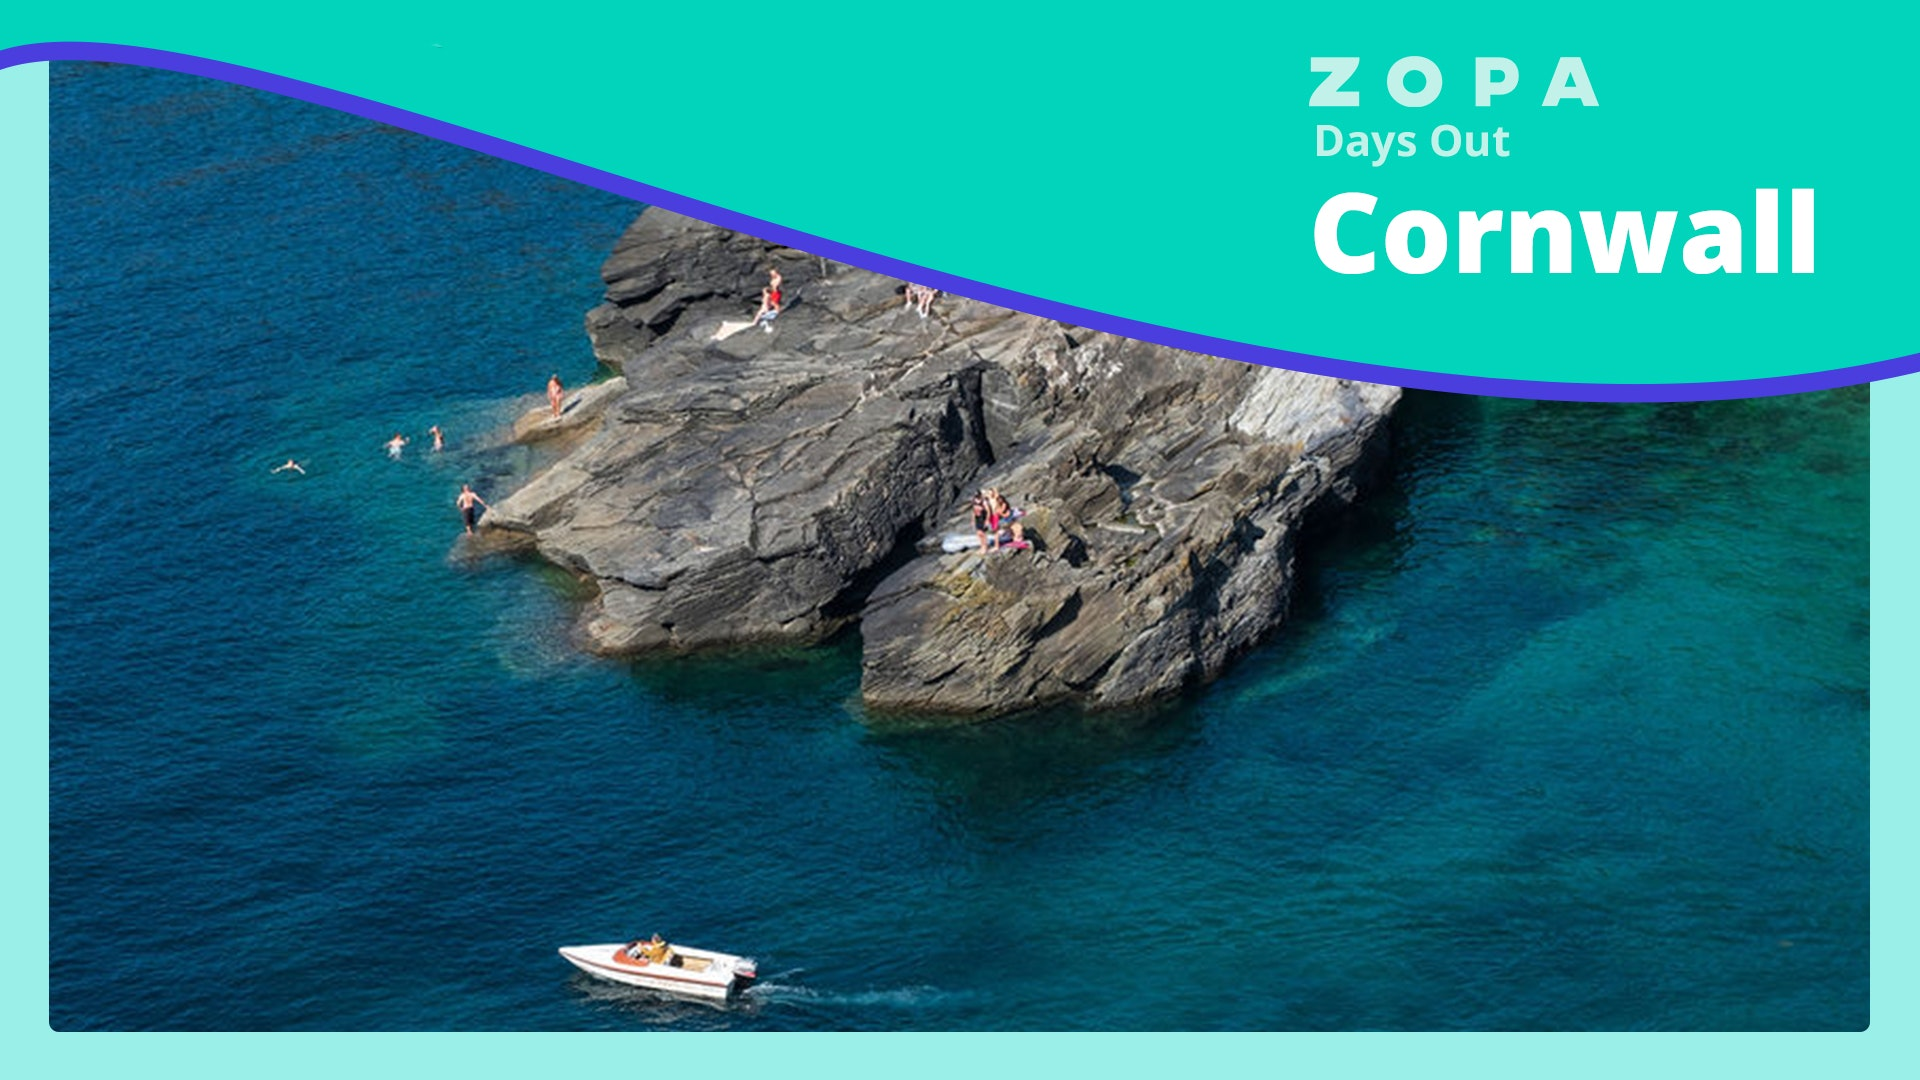 zopa-days-out-an-alternative-day-in-cornwall